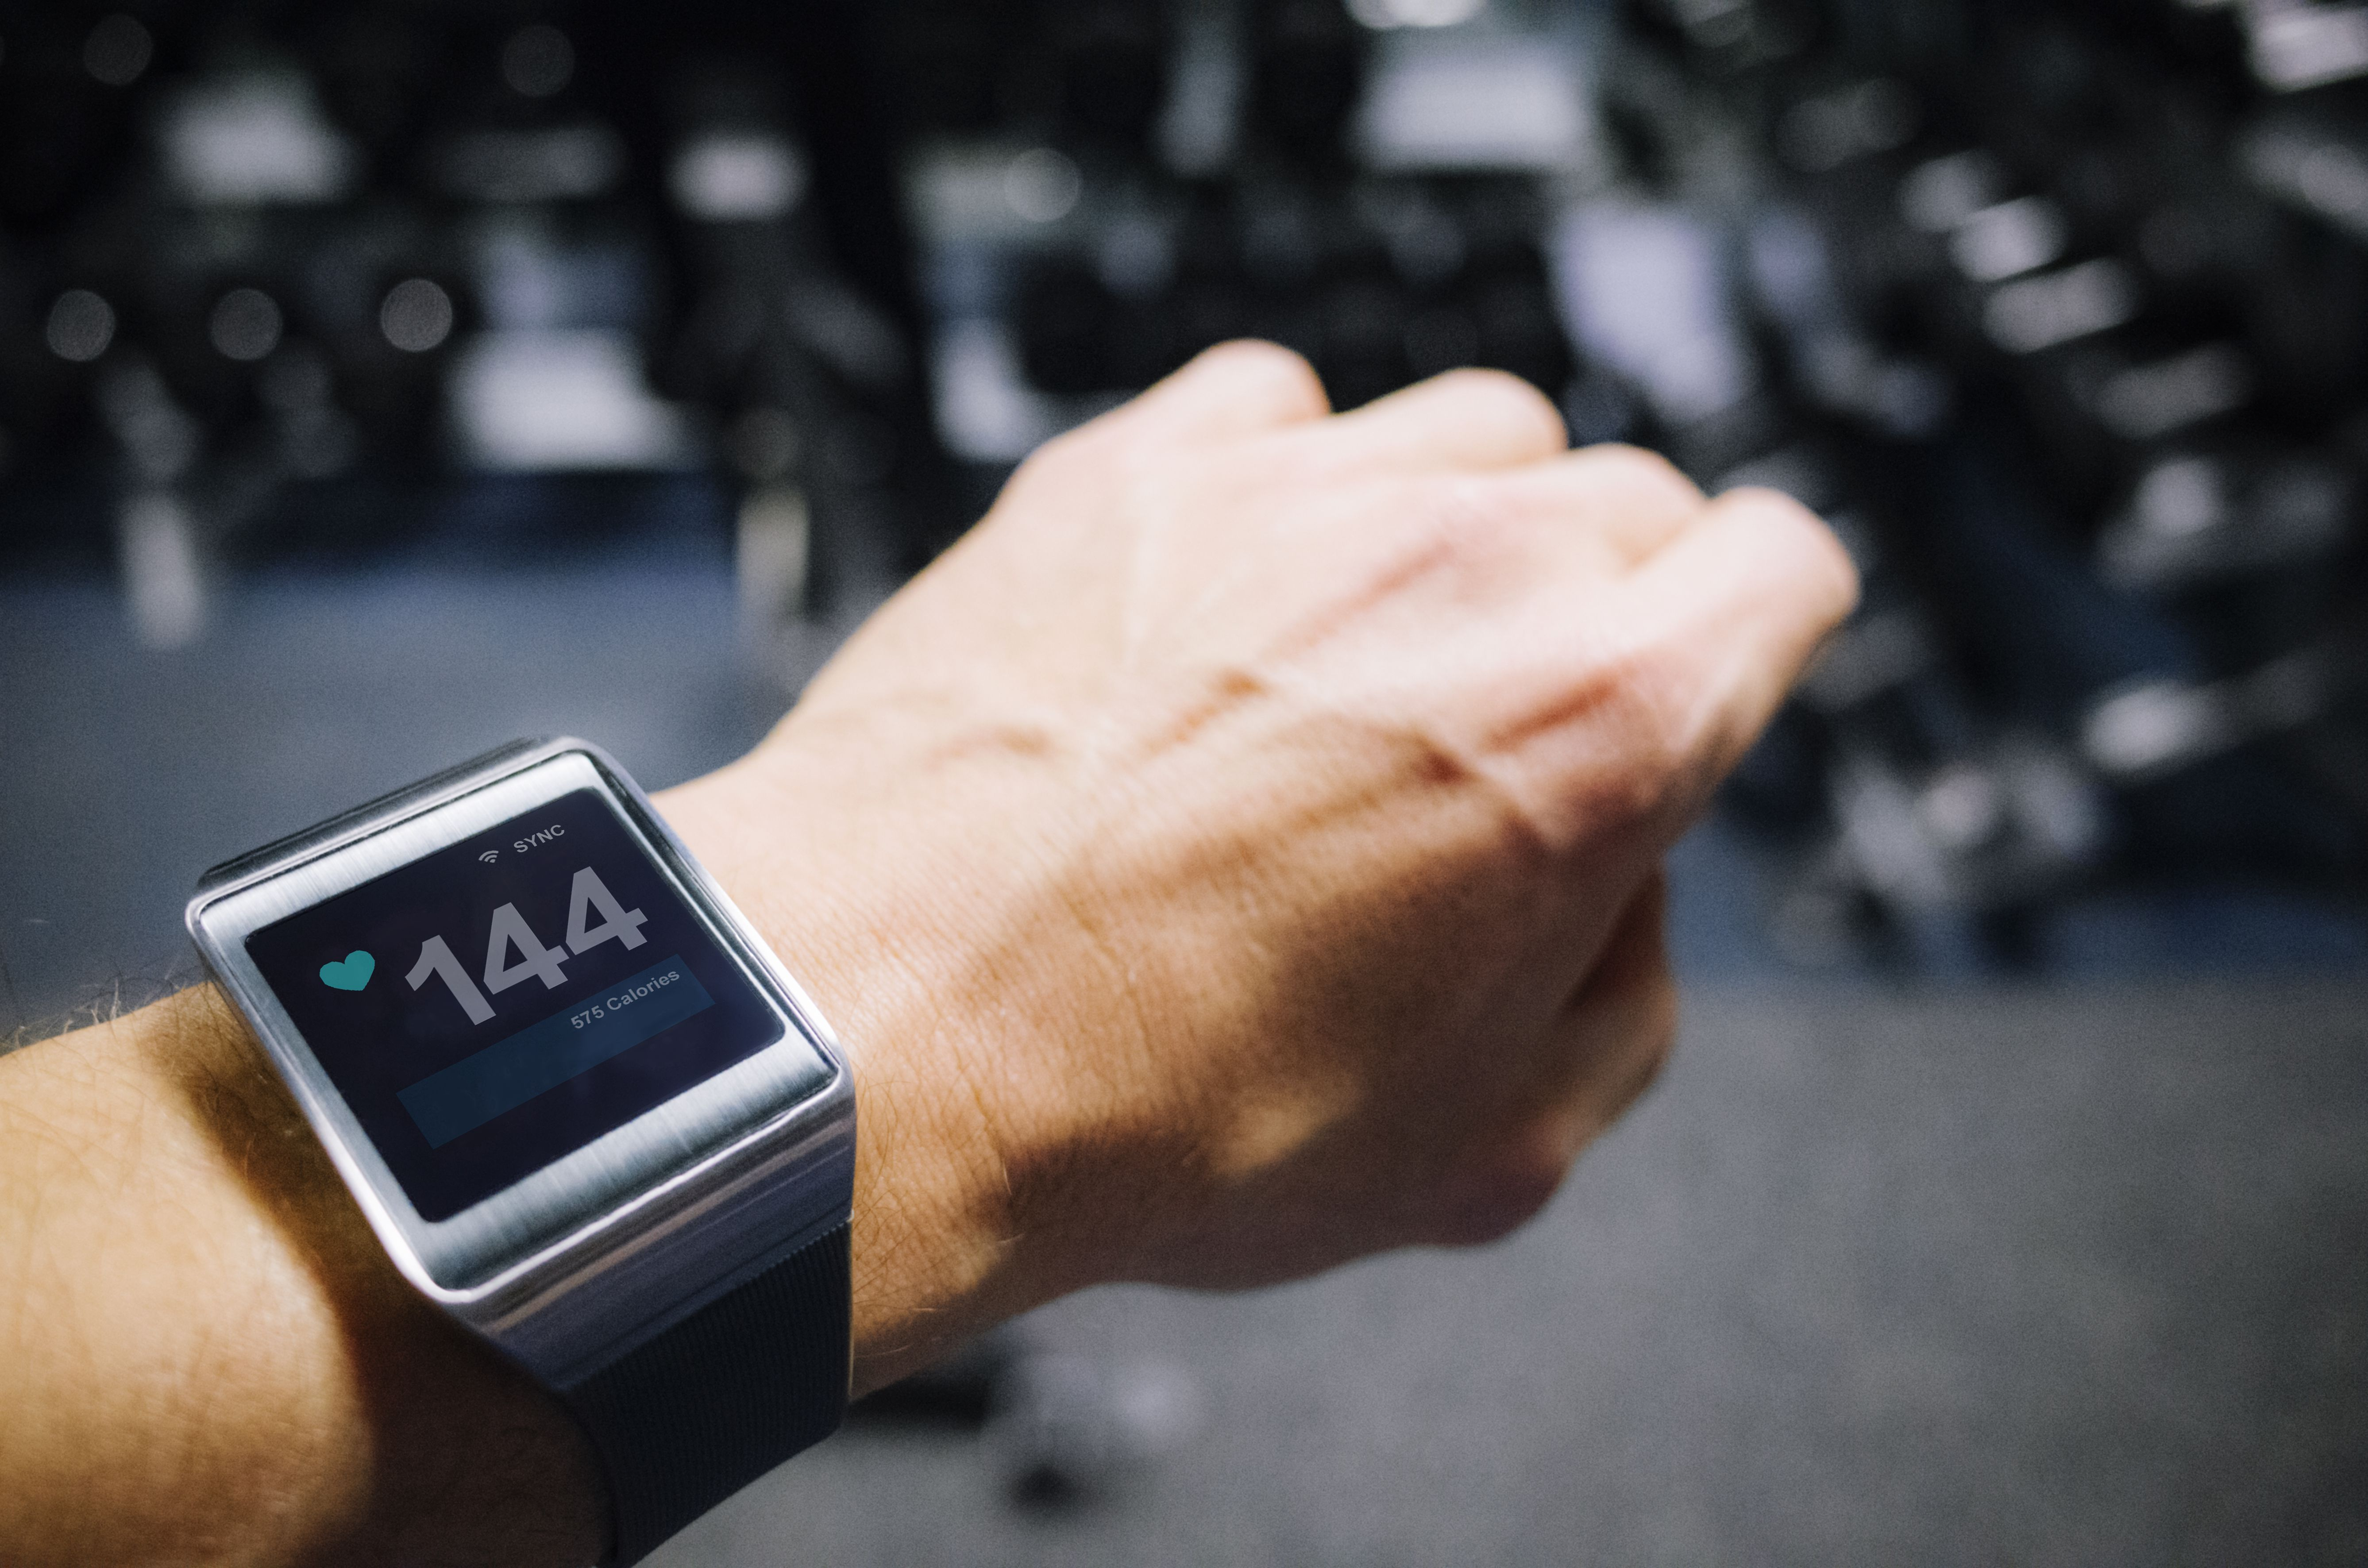 Smartwatch showing pulse.